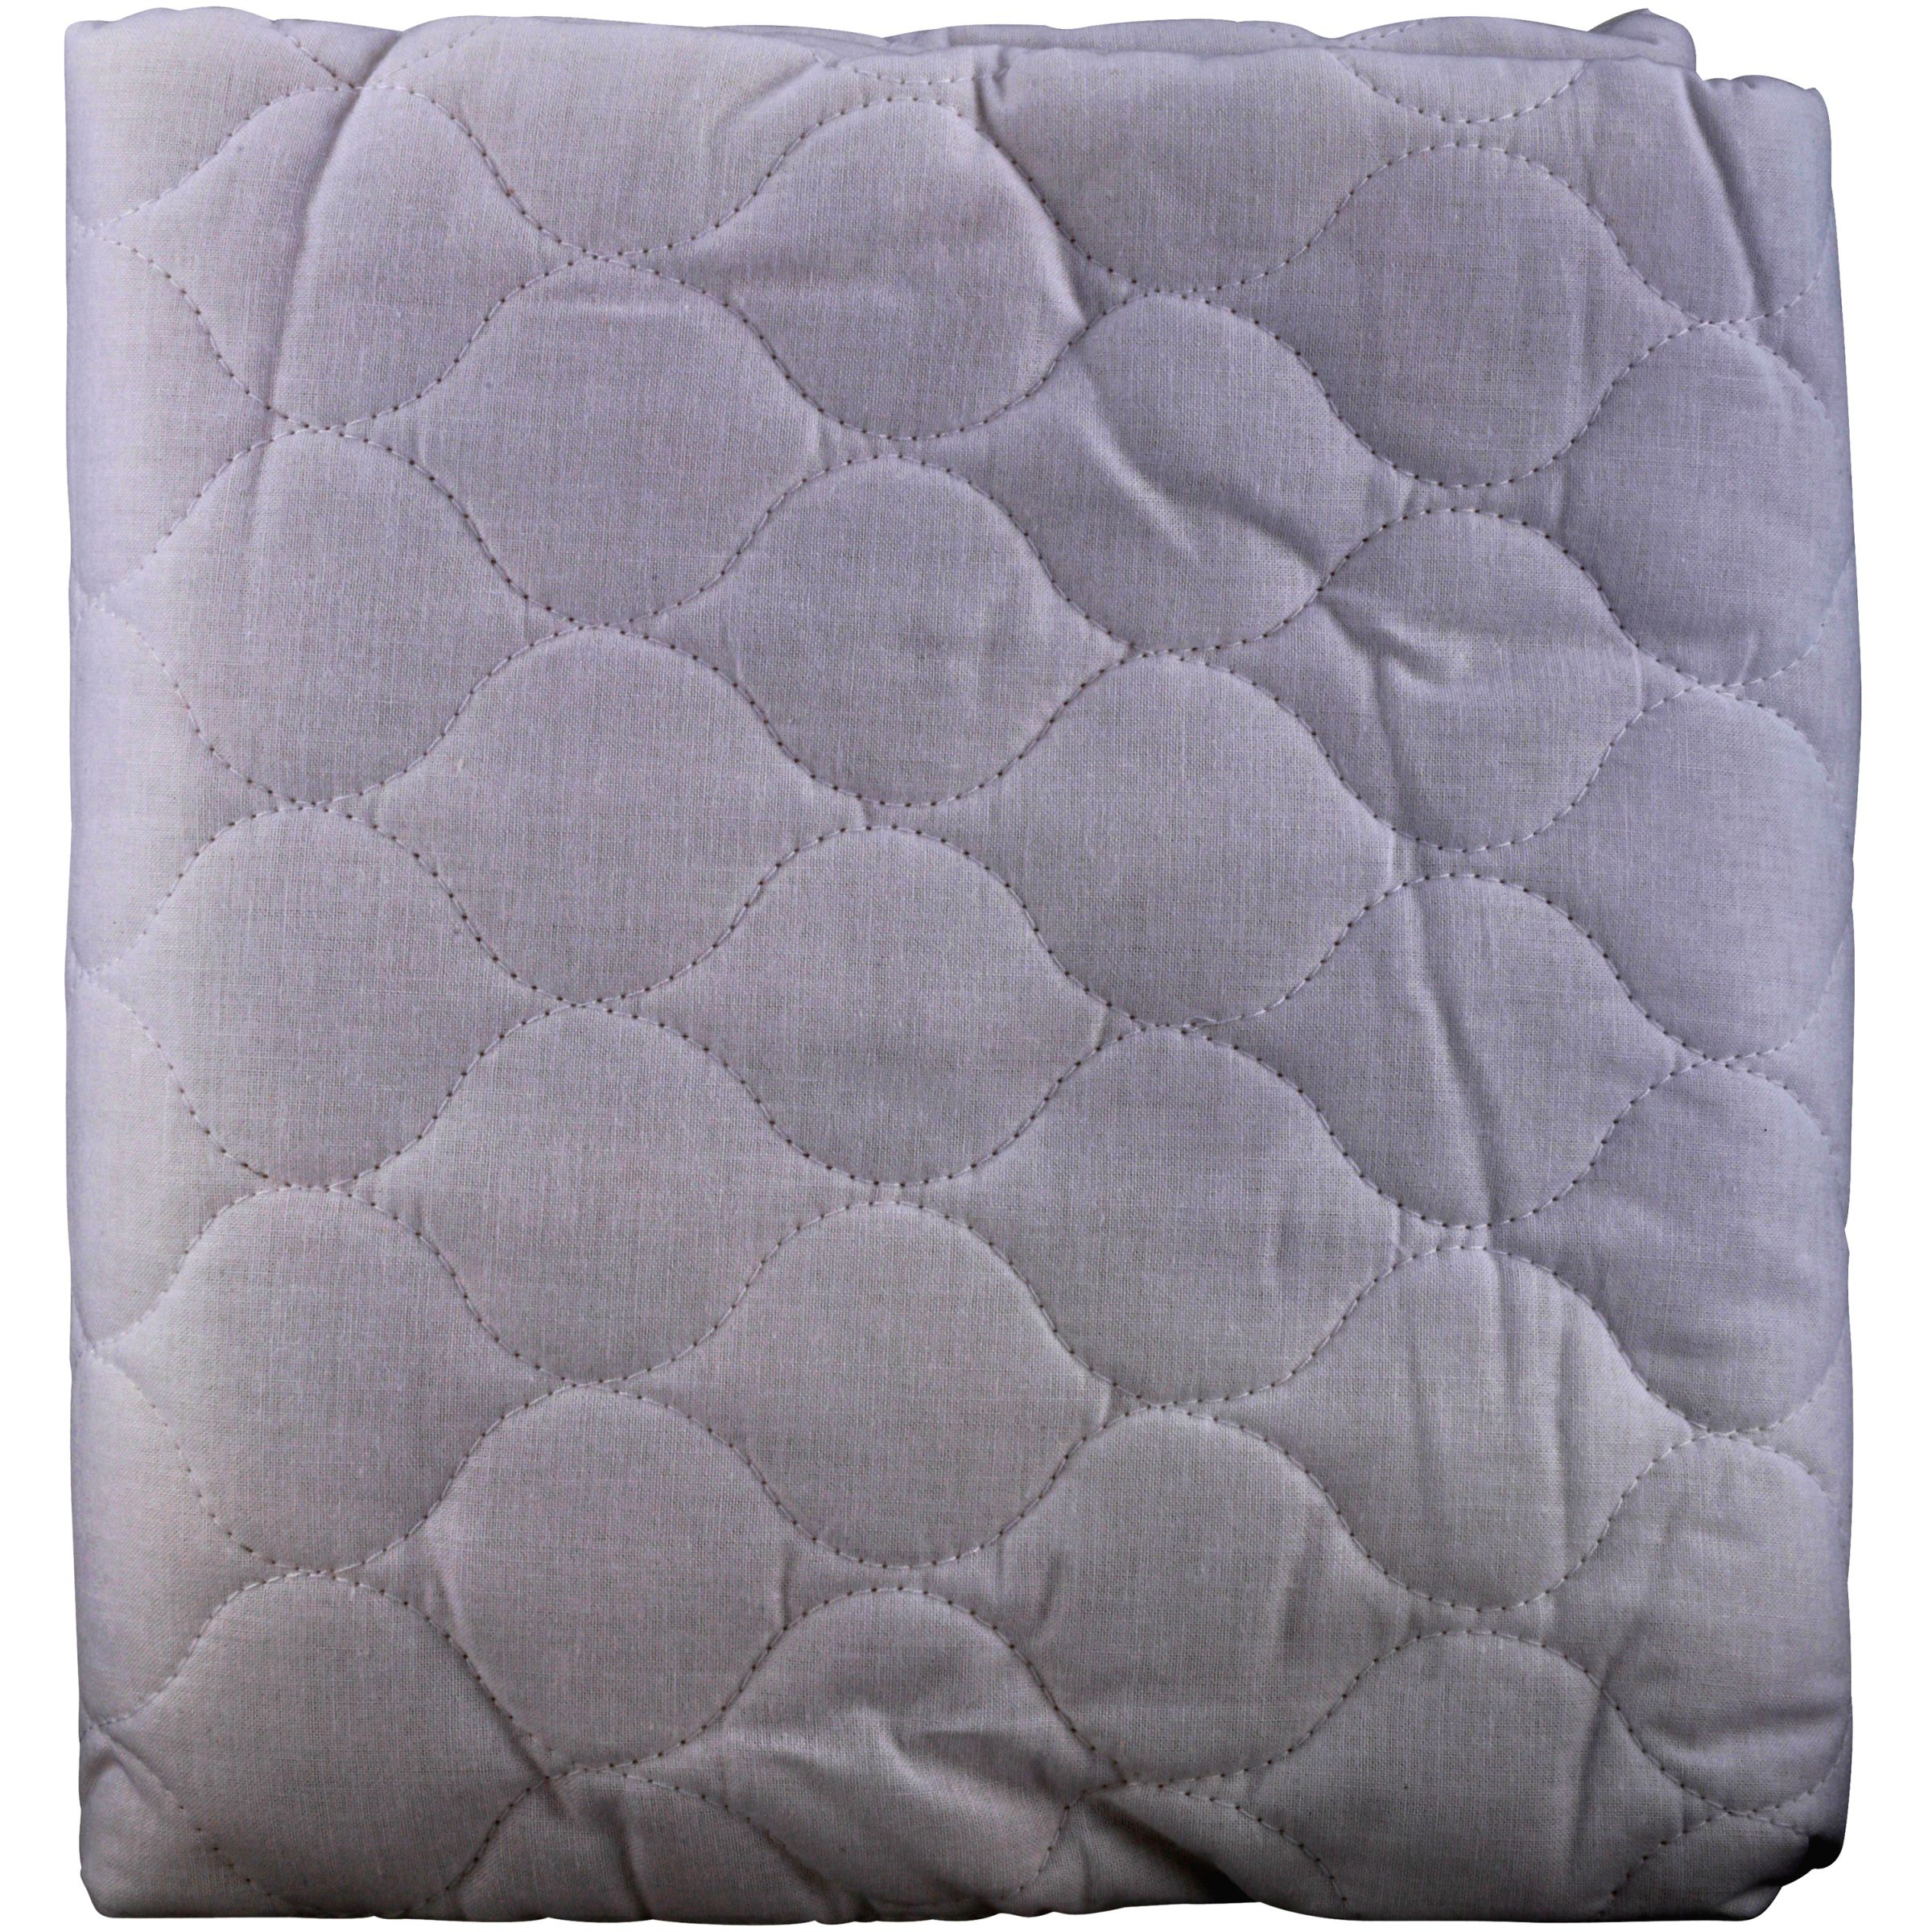 quilted mattress pad. TL Care® Waterproof Quilted Mattress Pad Cover